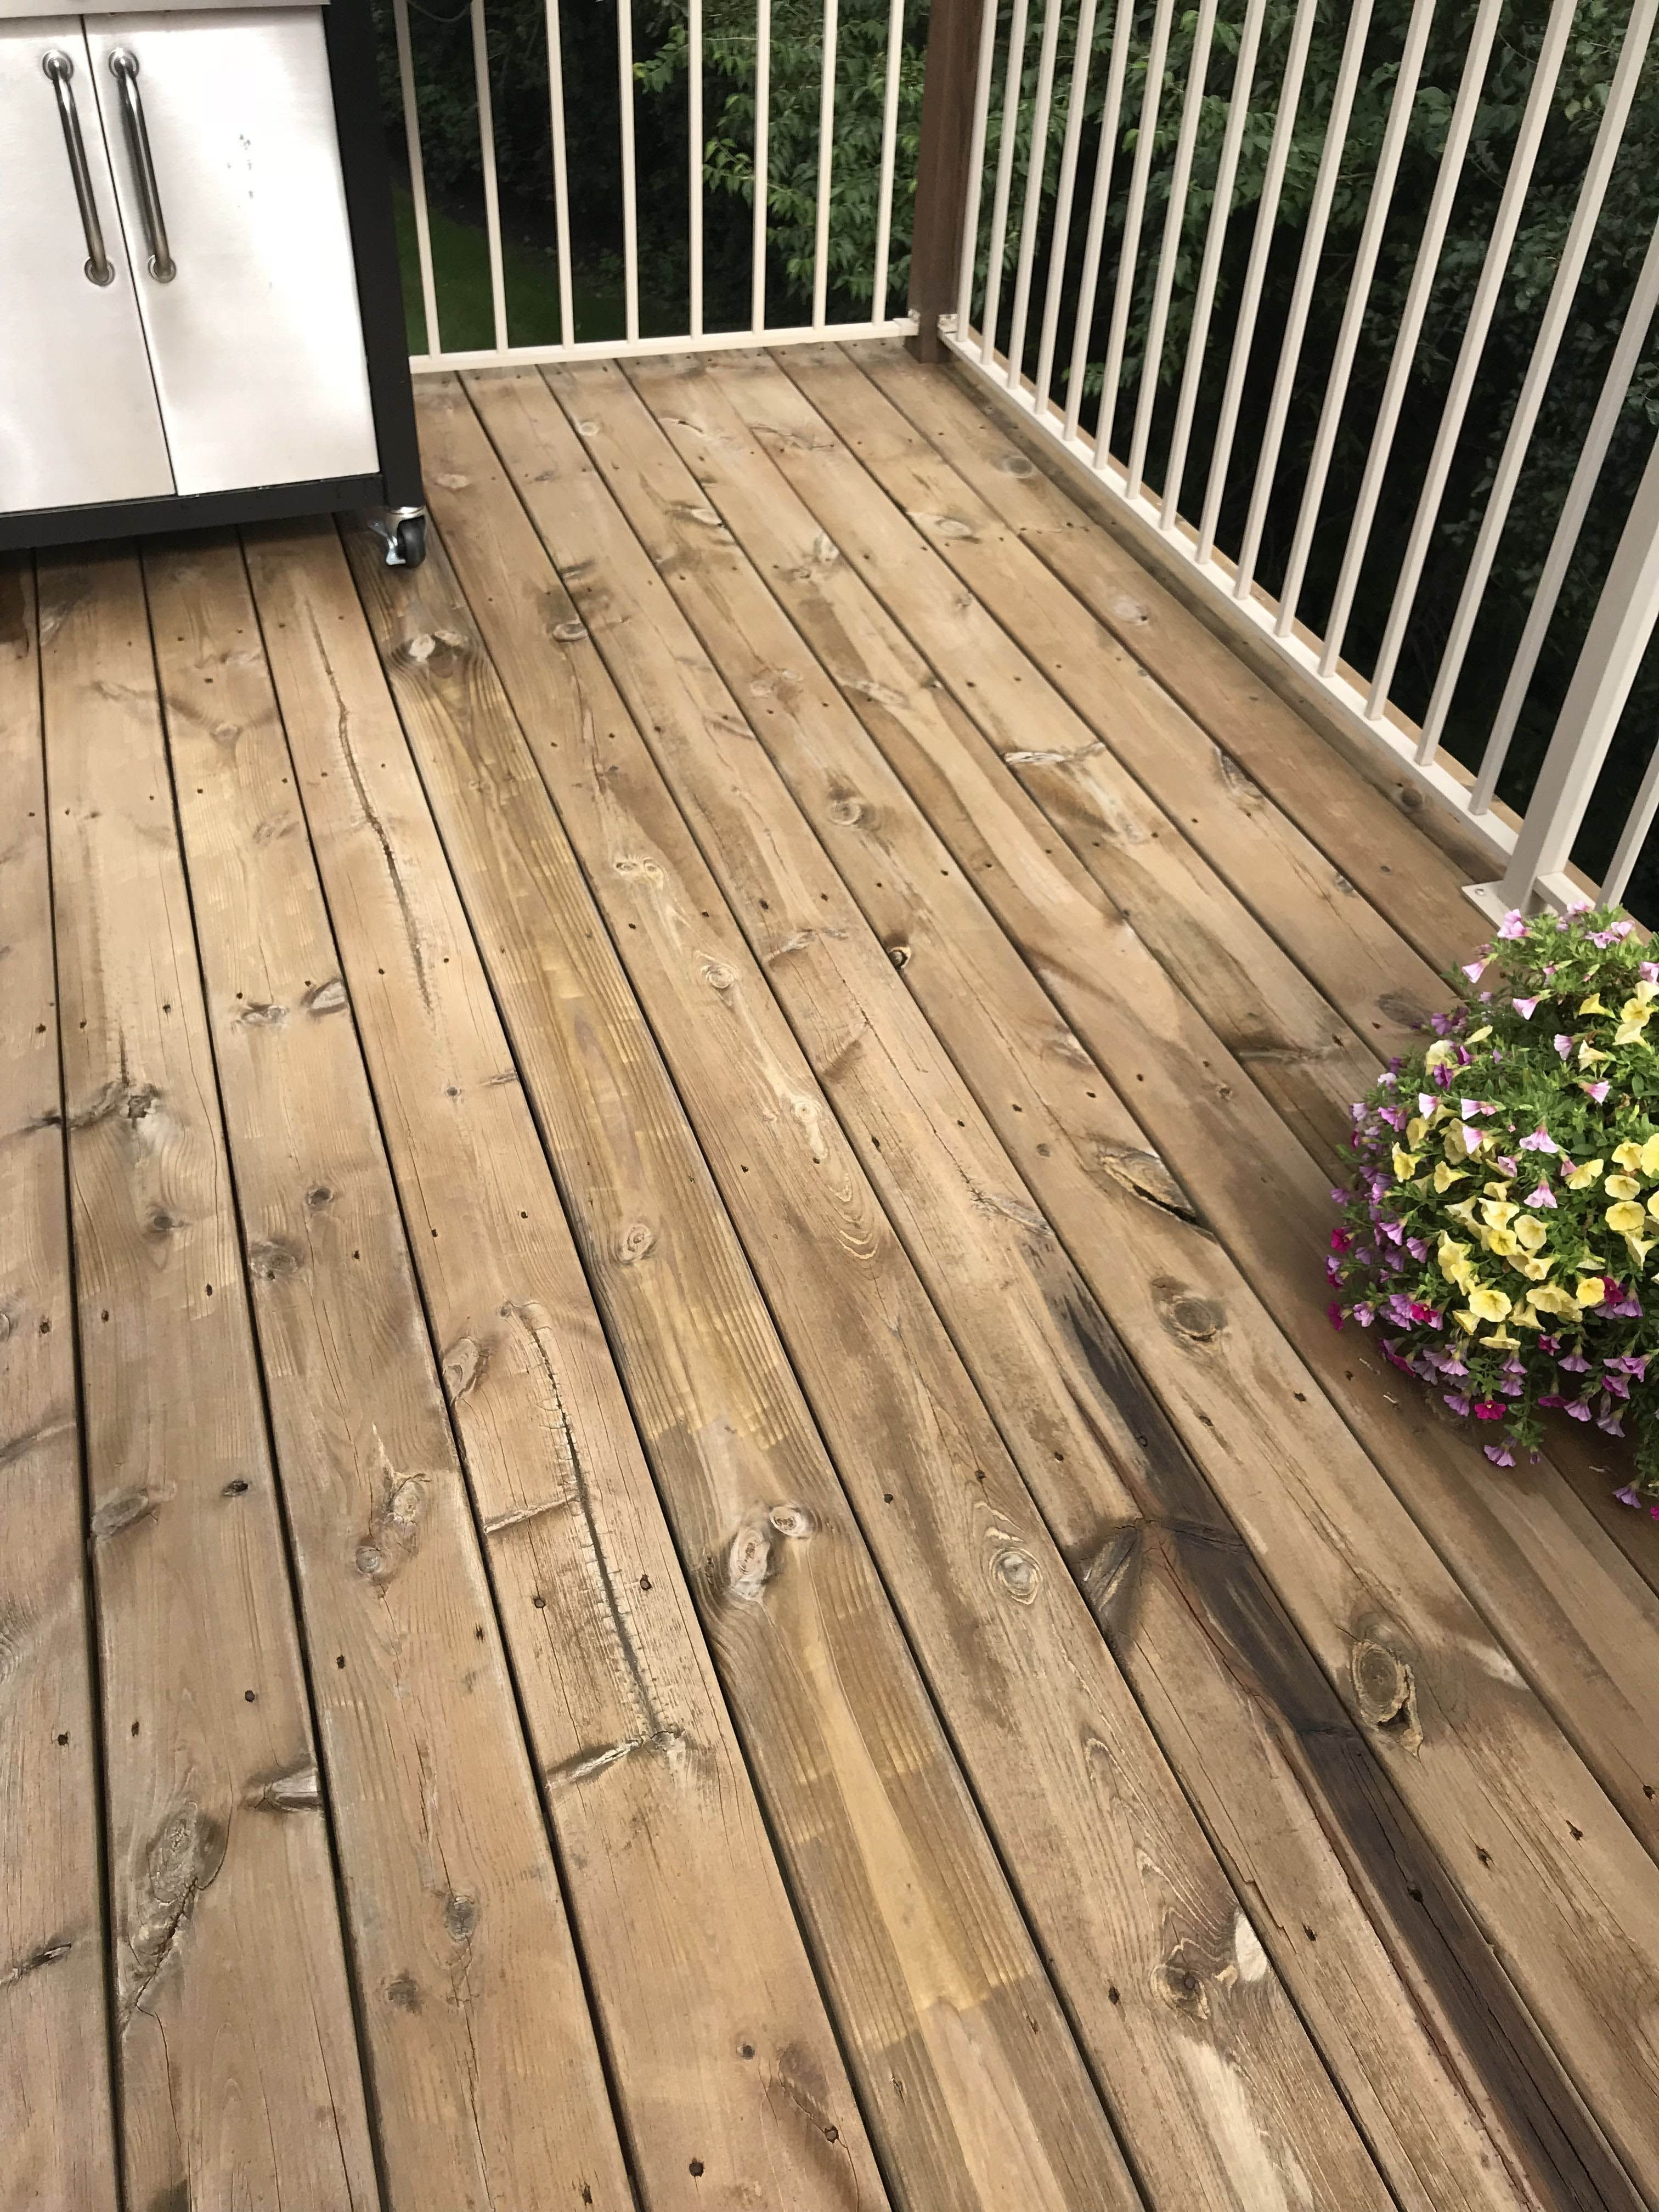 Deck Stain Color Ideas Staining Deck Deck Stain Colors Best Deck Stain